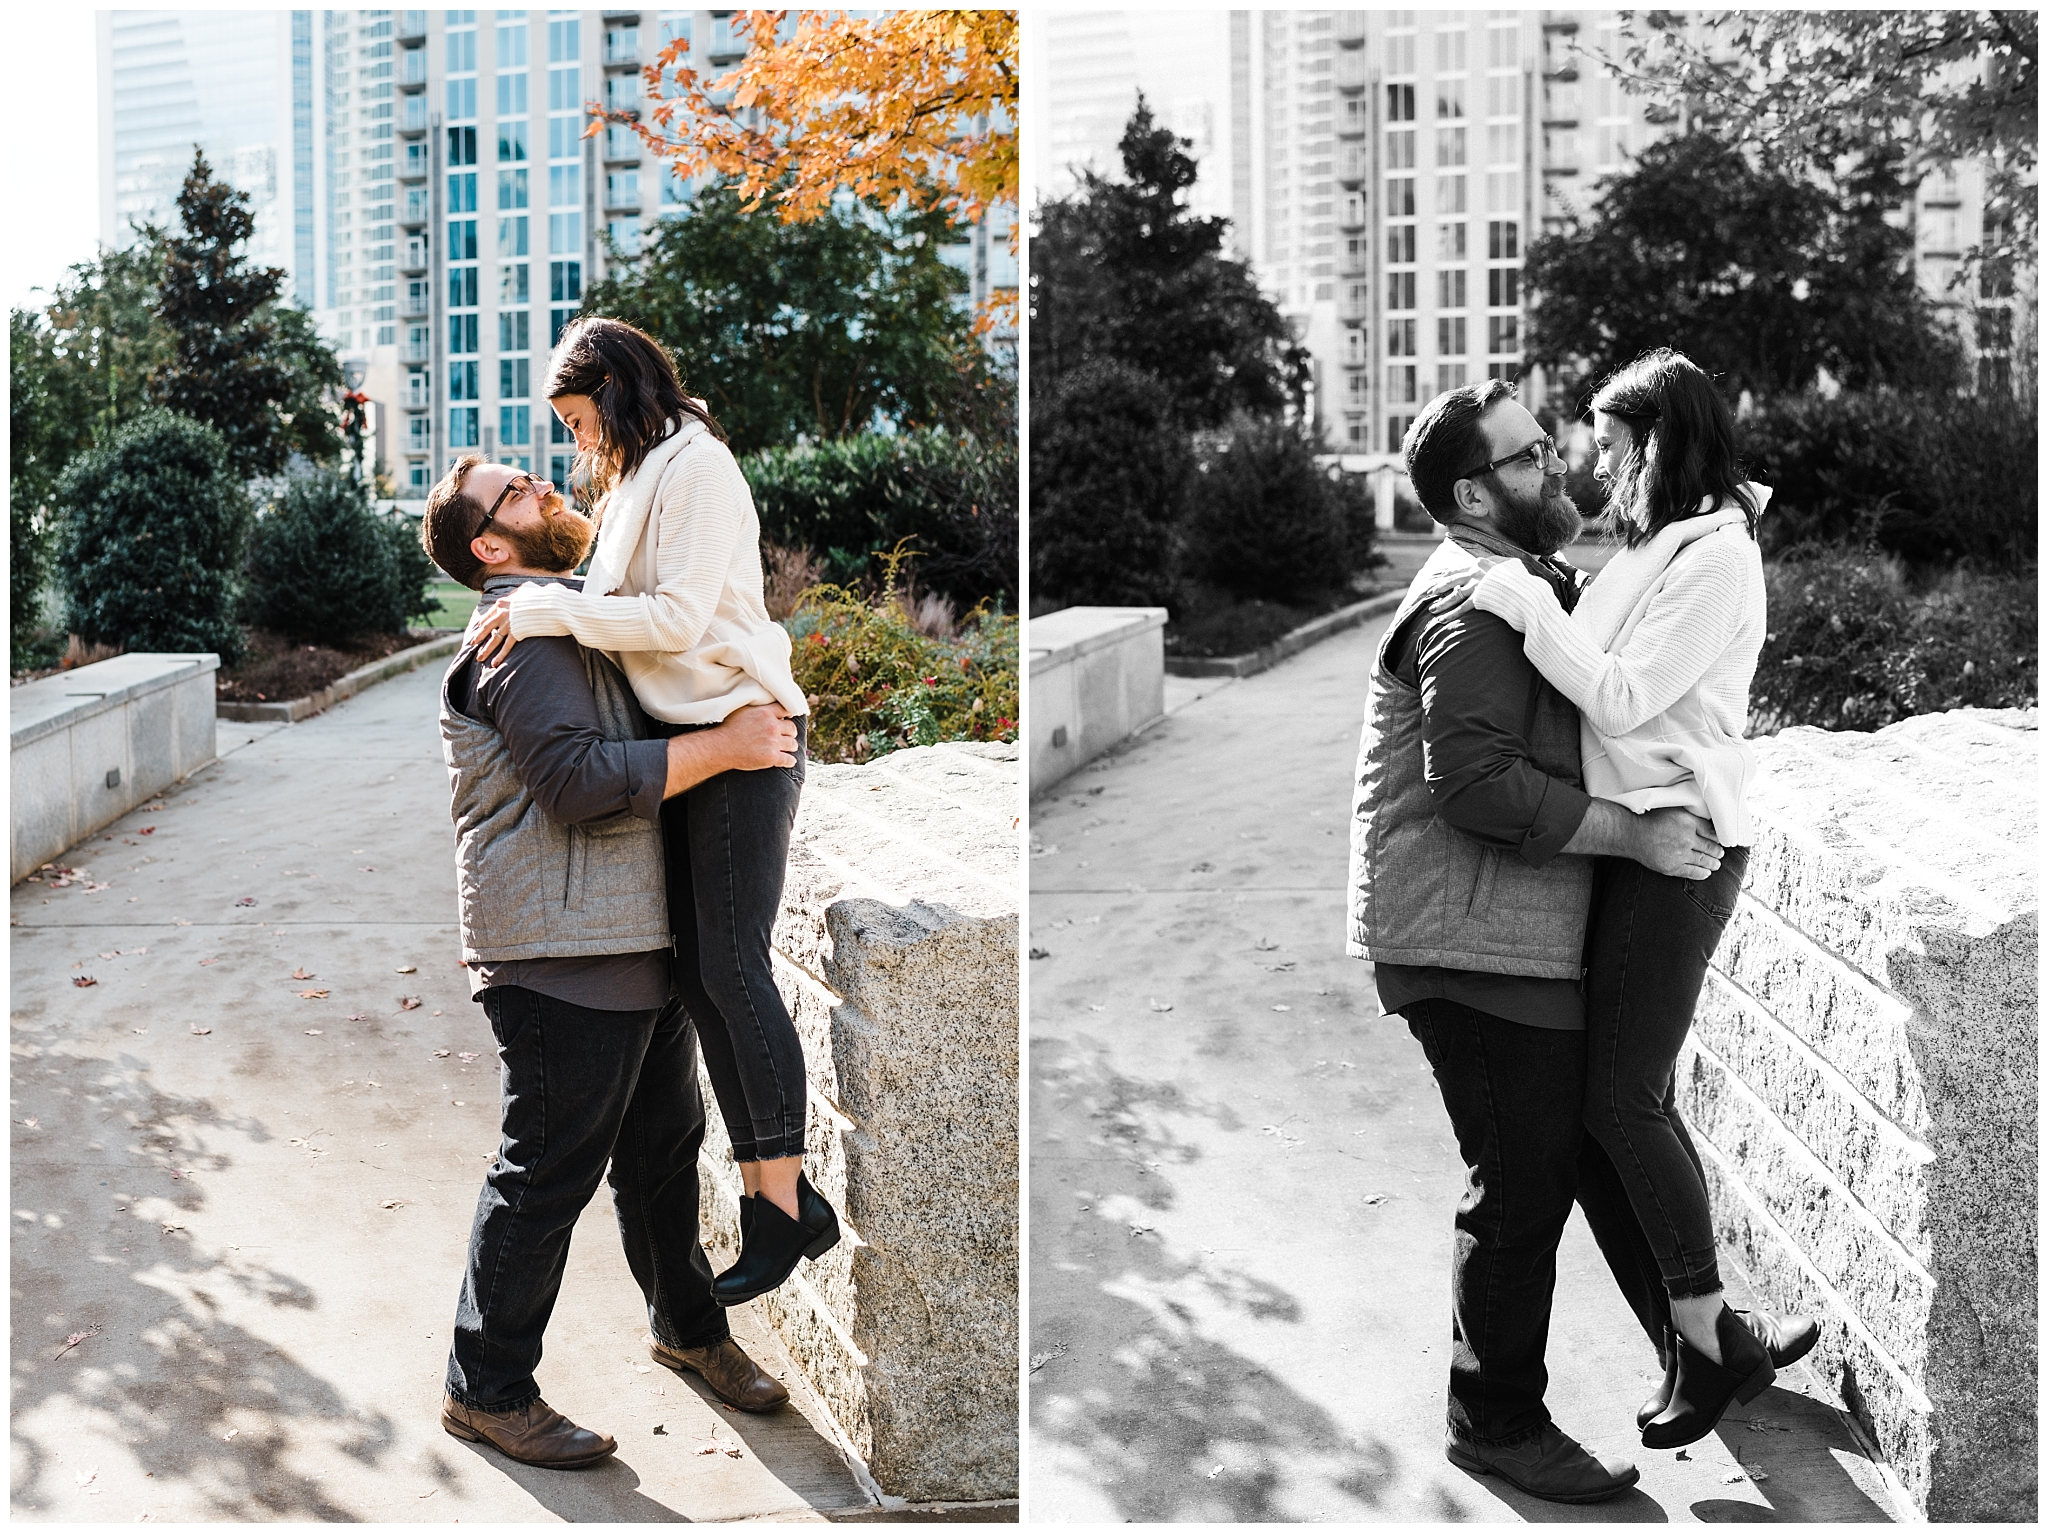 Easterday Creative | Adventurous wedding photographer and storyteller | Jess + Eric | Queen City Anniversary Session | Charlotte, NC